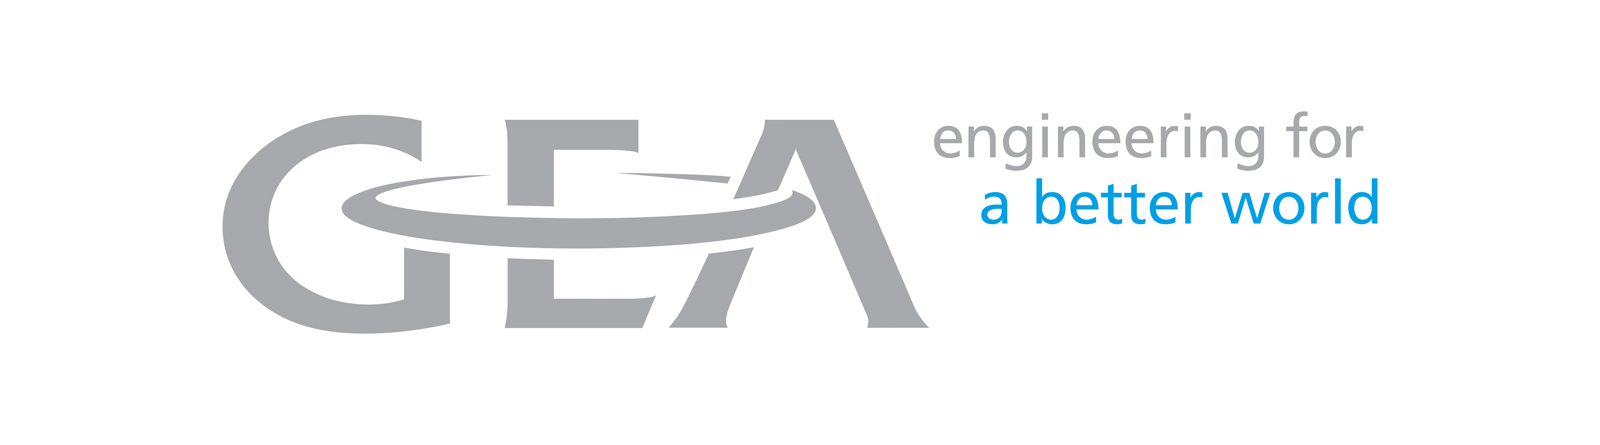 GEA engineering for a better world